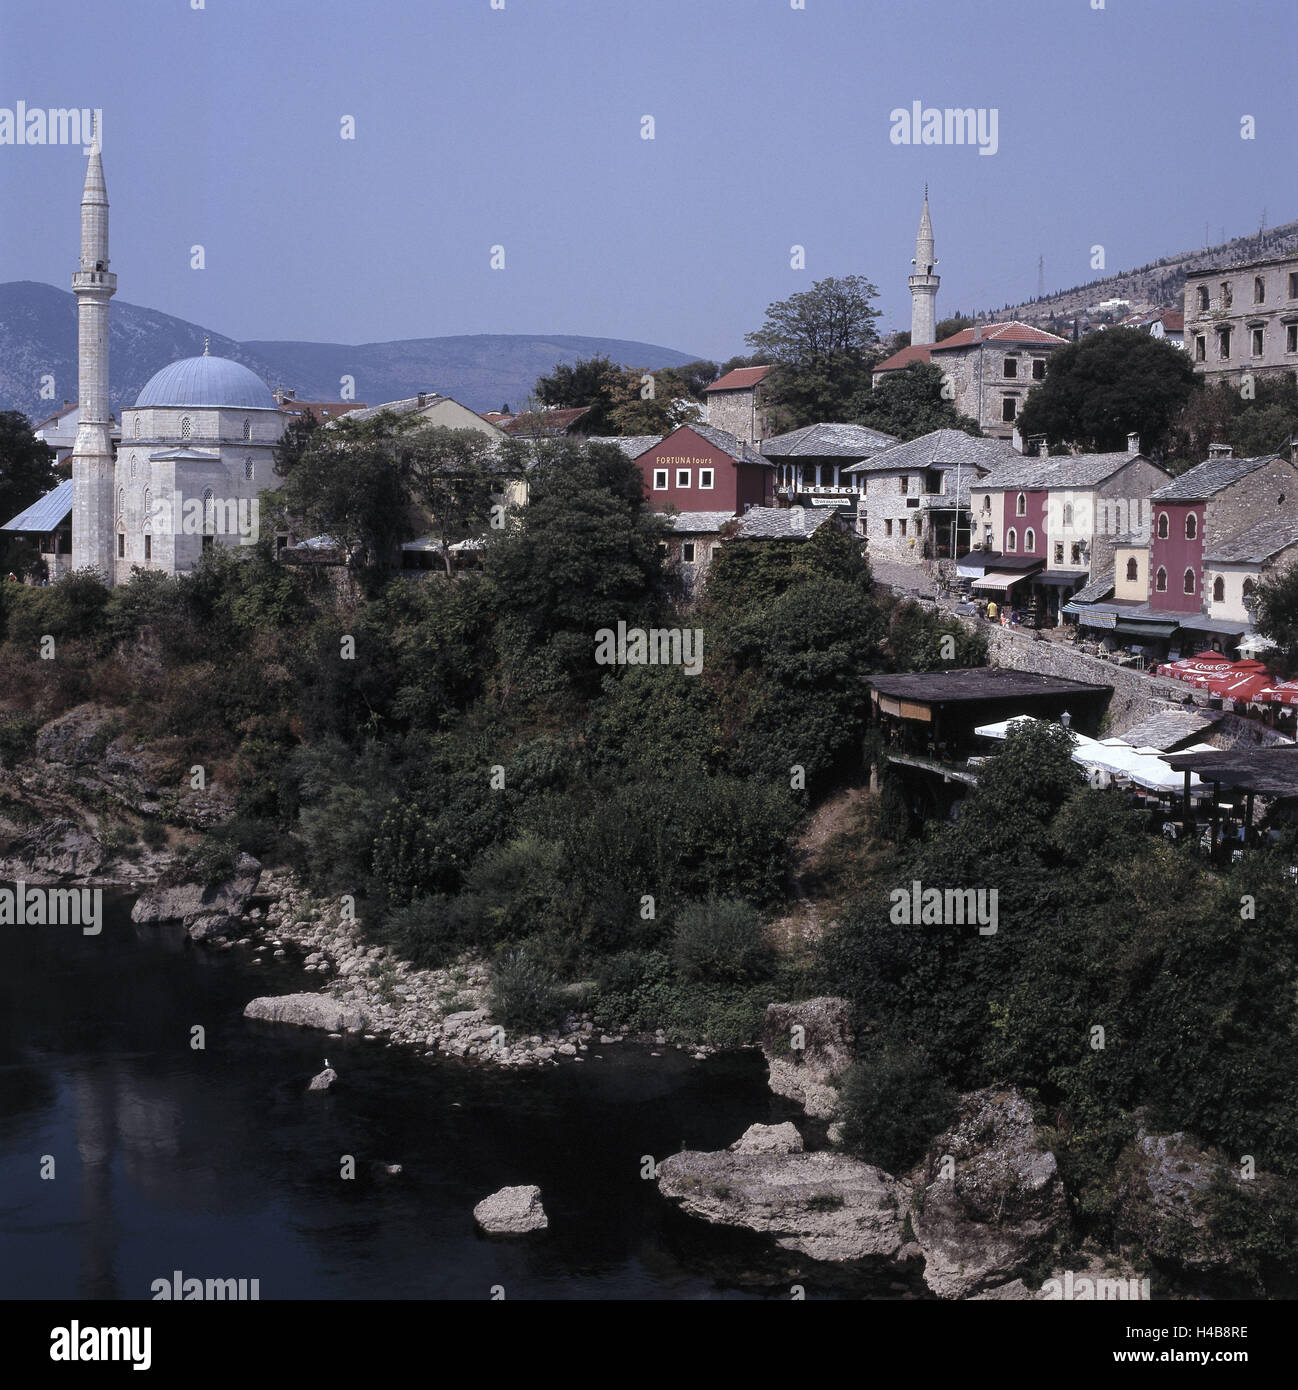 Bosnia-Herzegovina, Mostar, Old Town, townscape, mosques, - Stock Image